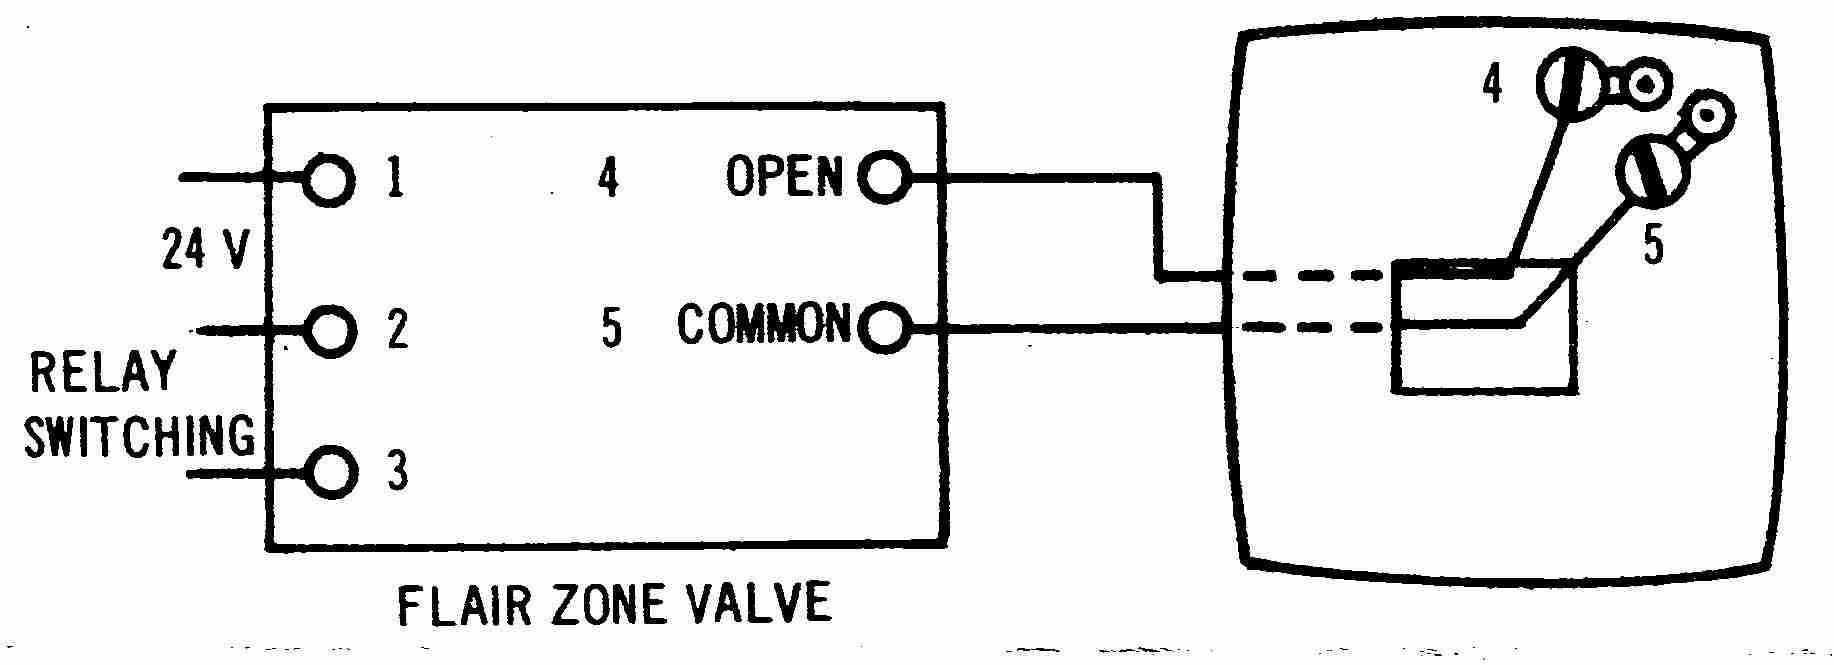 Flair2w_001_DJFc1 room thermostat wiring diagrams for hvac systems air conditioner relay wiring diagram at mr168.co